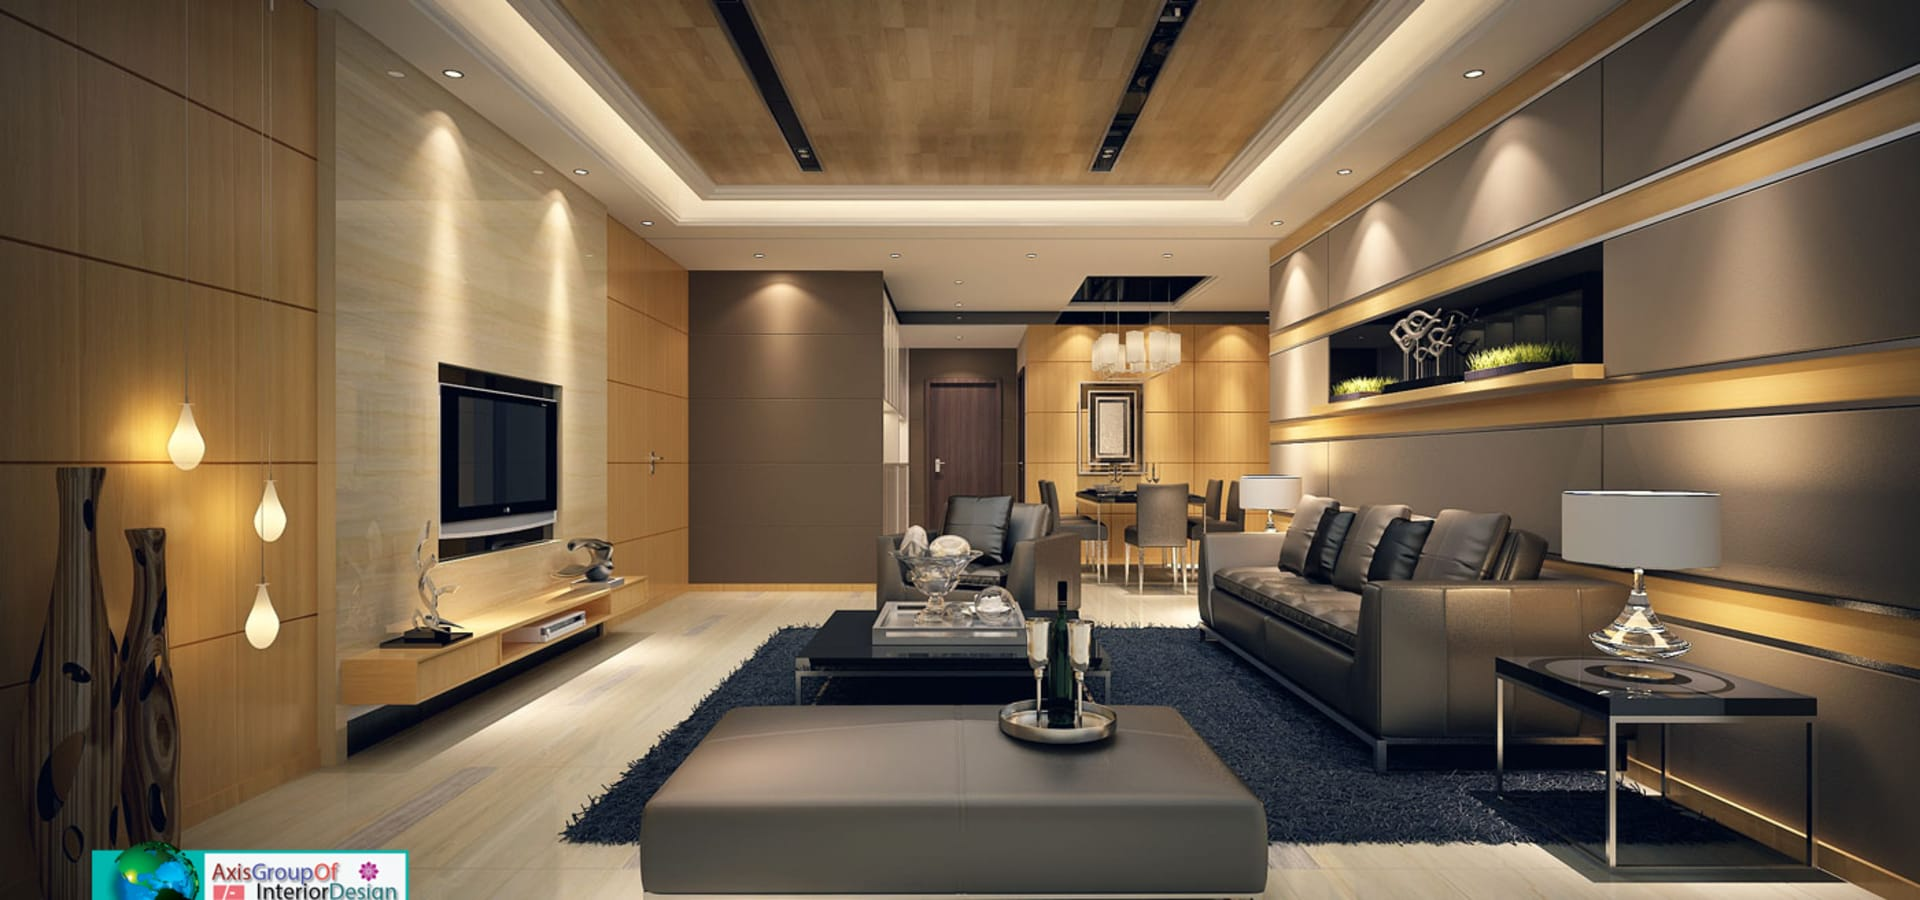 Interior design for 3 bhk home - Axis Group Of Interior Design